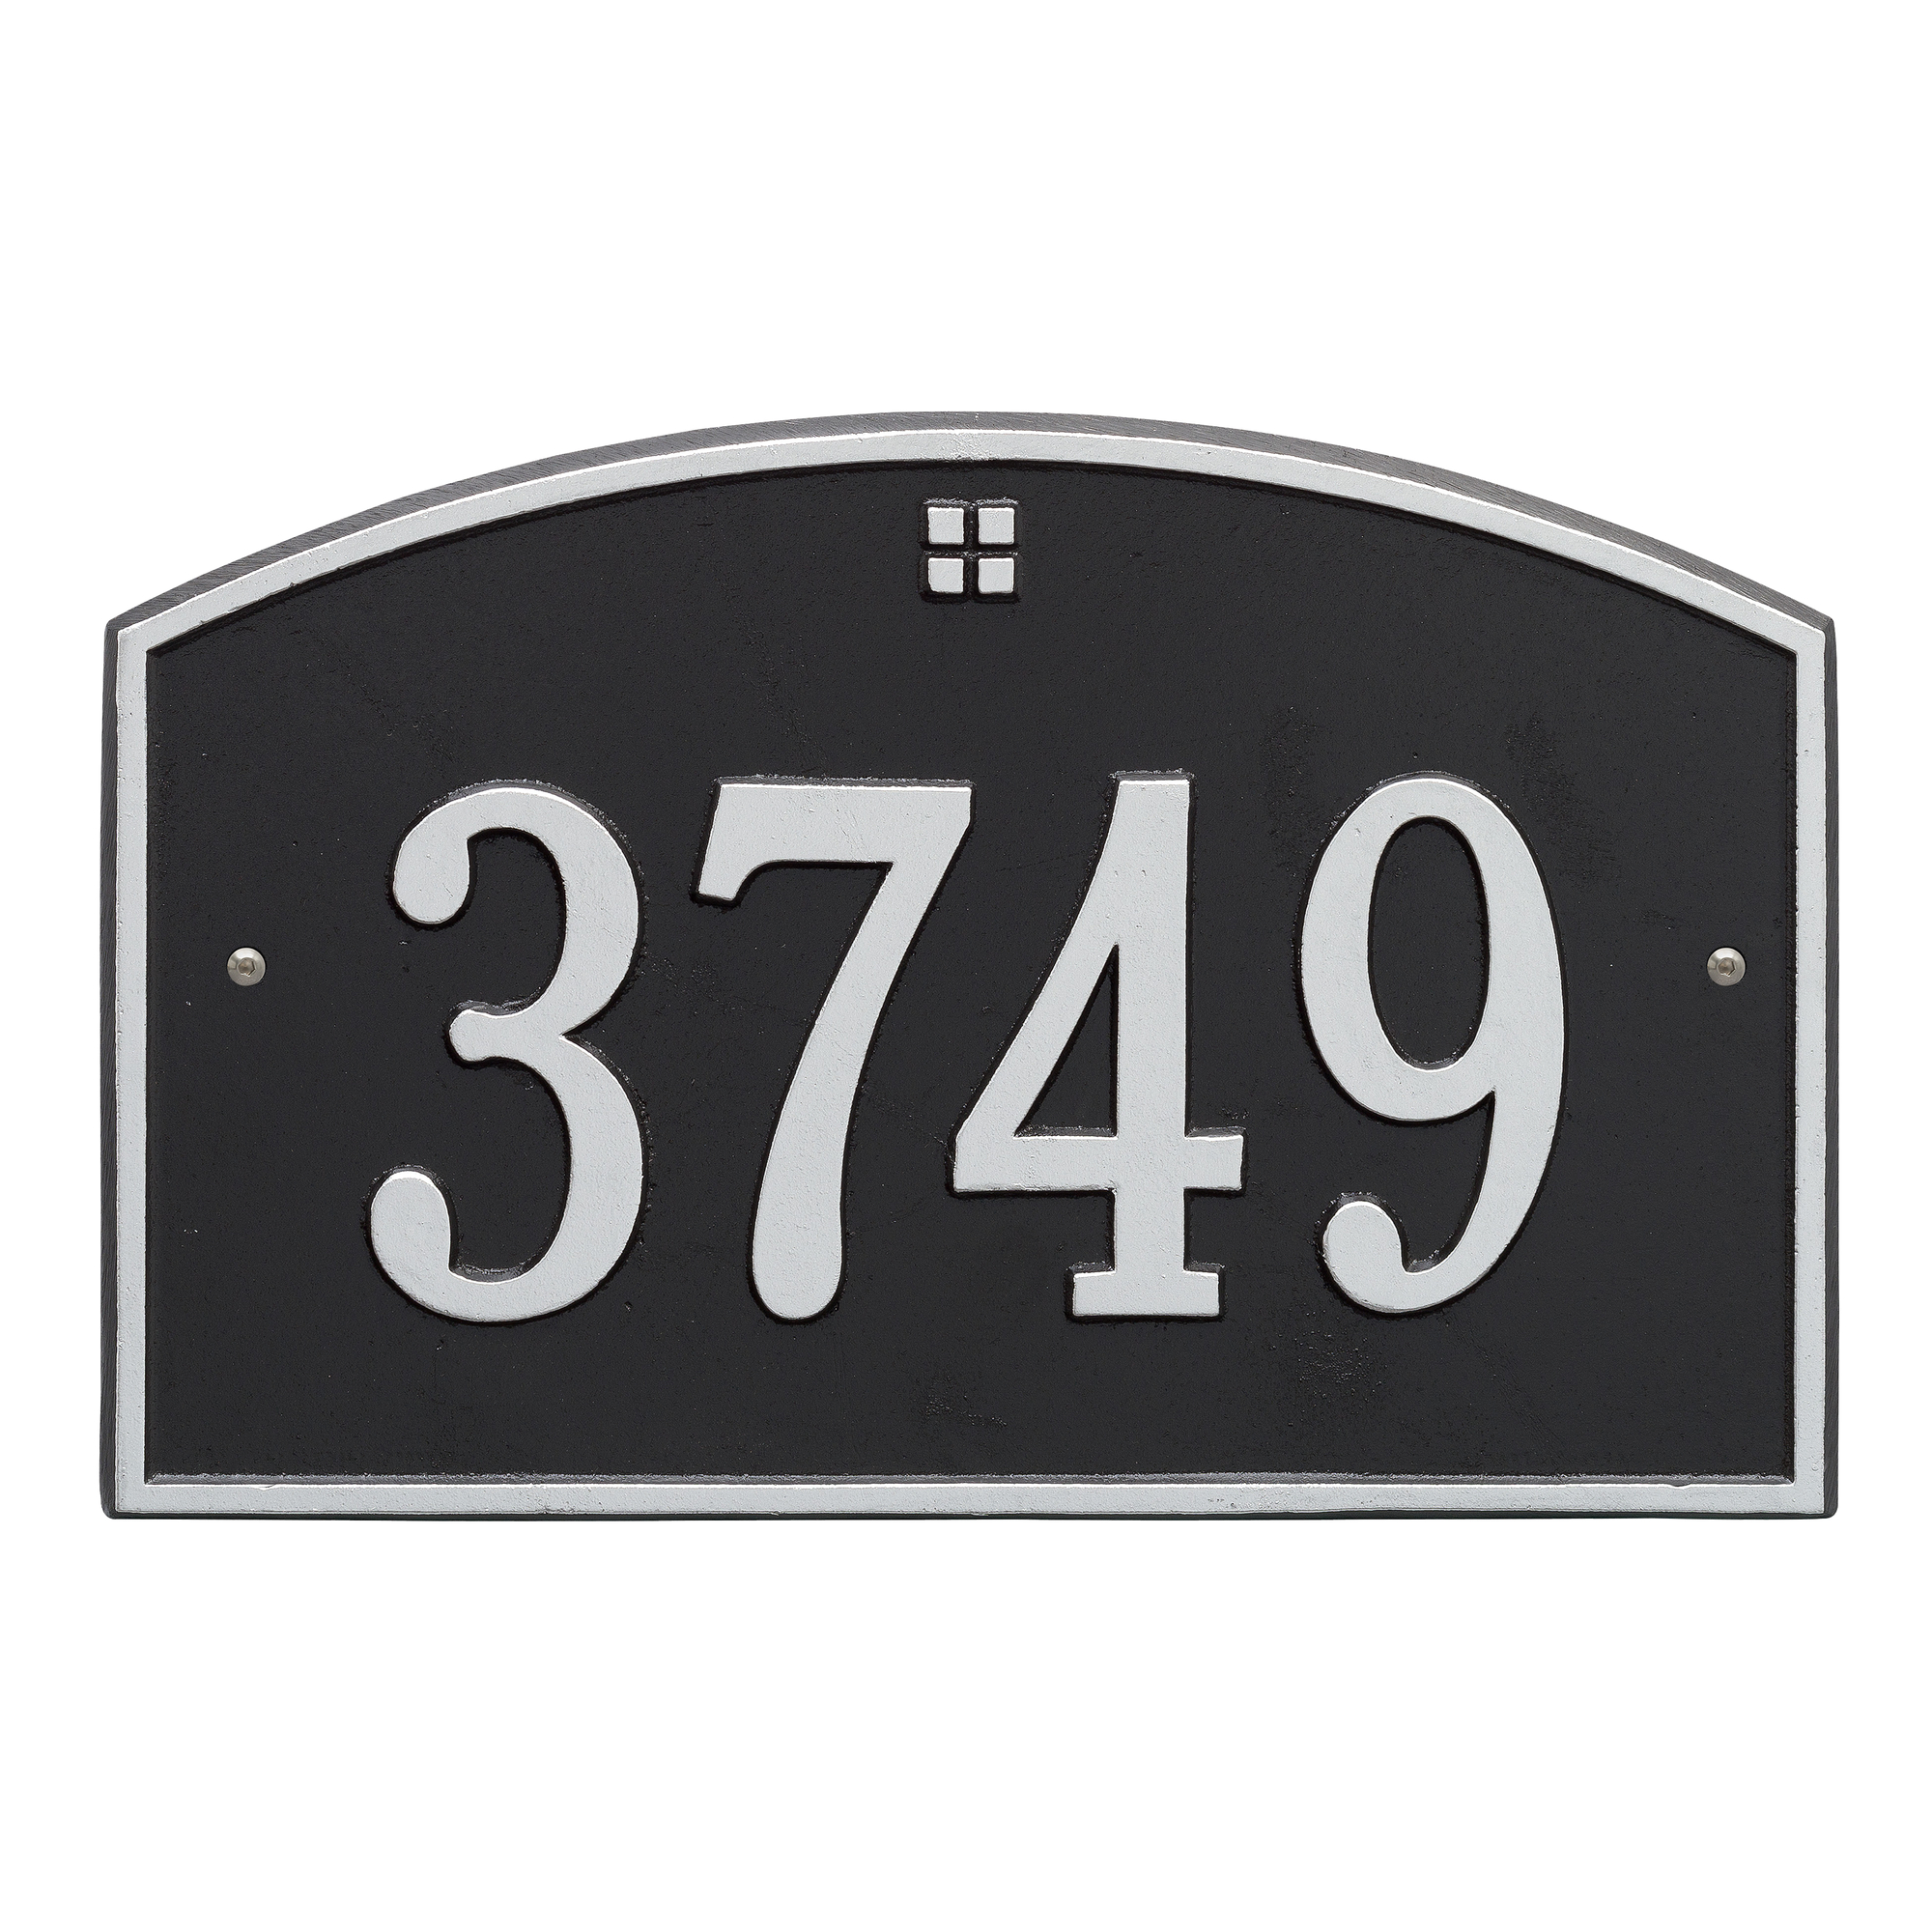 Personalized Whitehall Products Cape Charles 1- Line Address Plaque in Black Silver by Whitehall